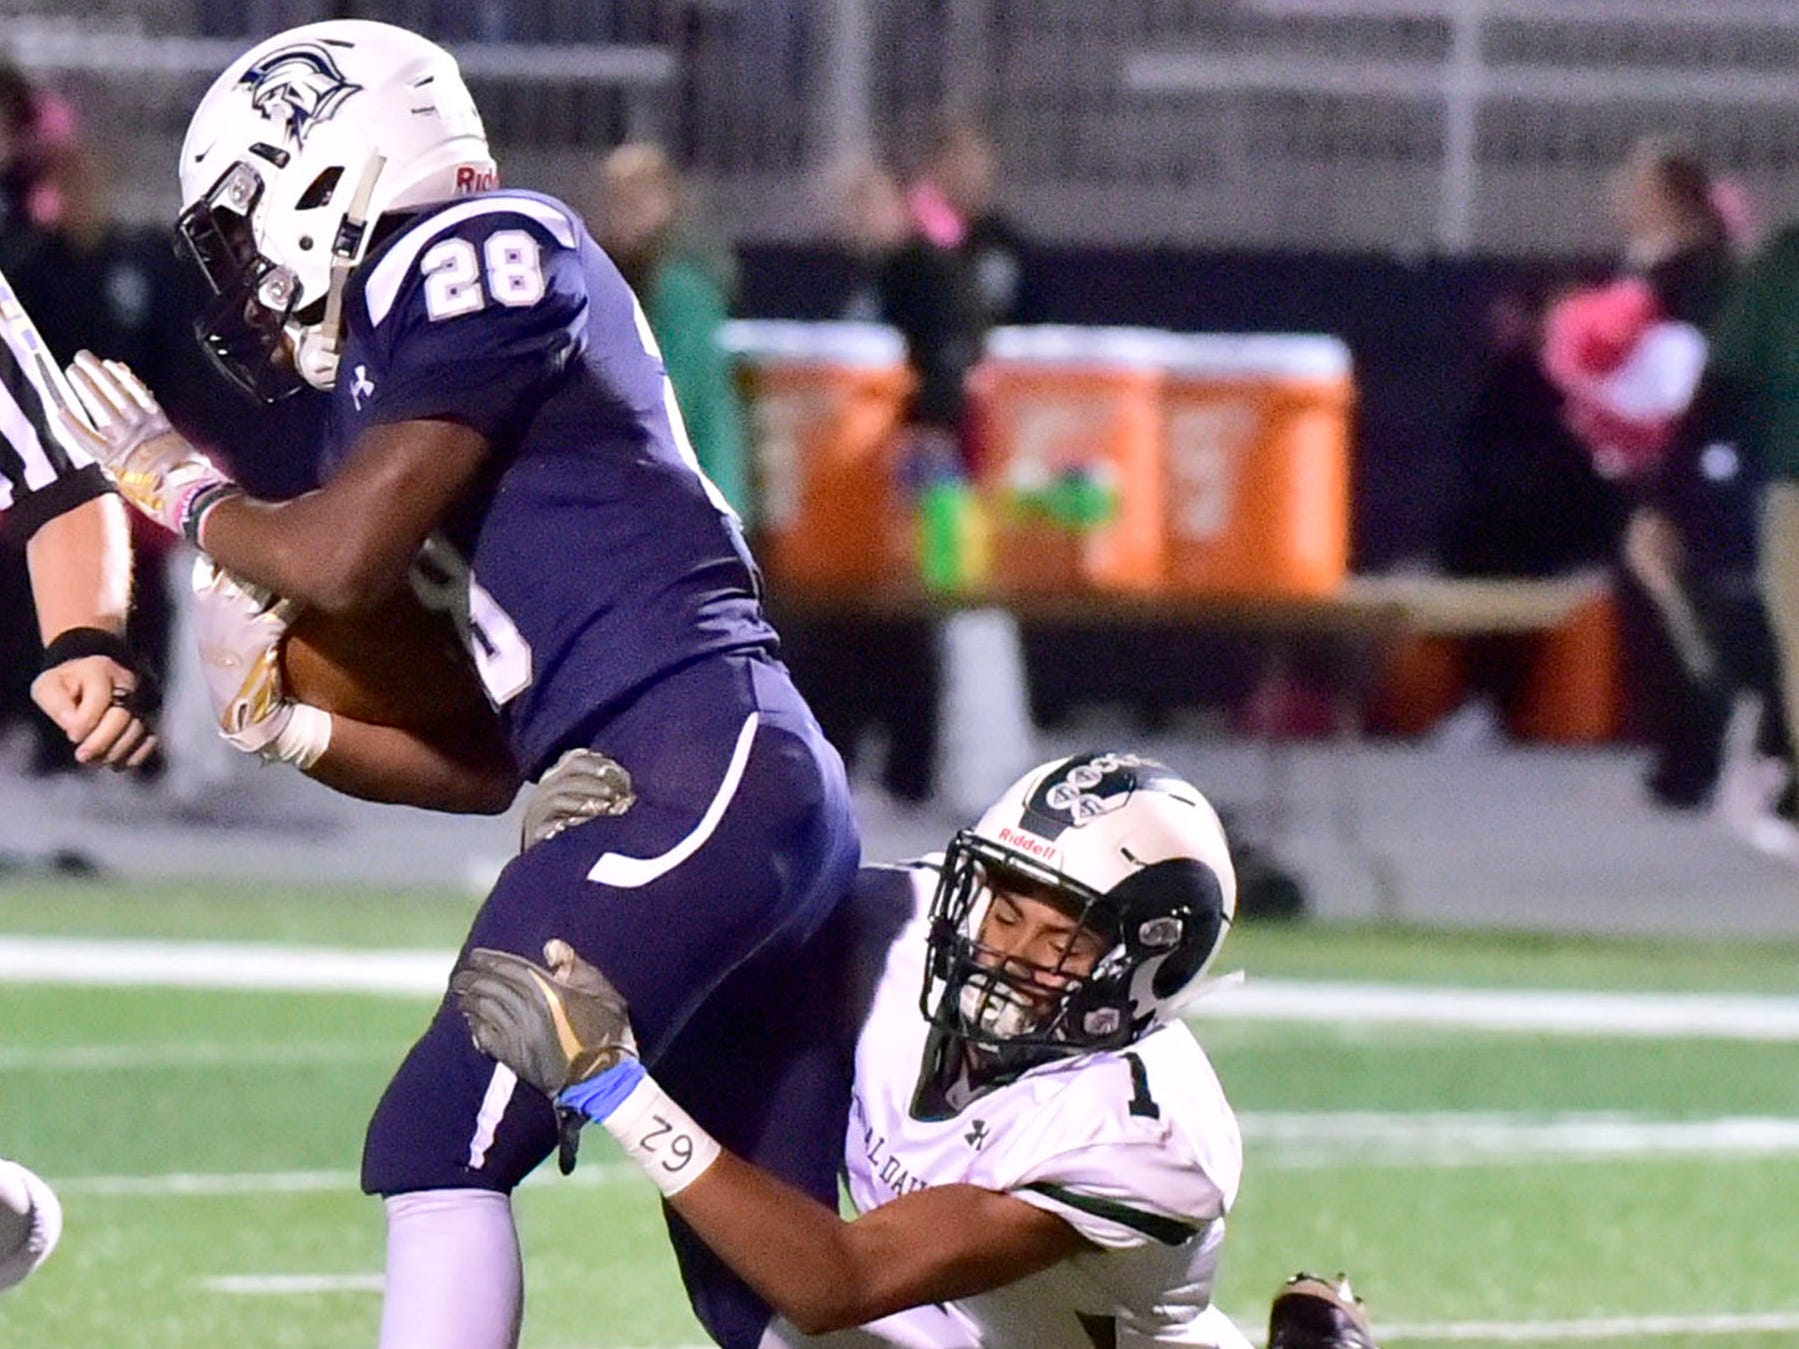 Chambersburg's Keyshawn Jones (28) tries to break away from CD's Tyrese Fuller (1). Chambersburg lost to Central Dauphin 35-14 in PIAA football on Friday, Oct. 19, 2018.